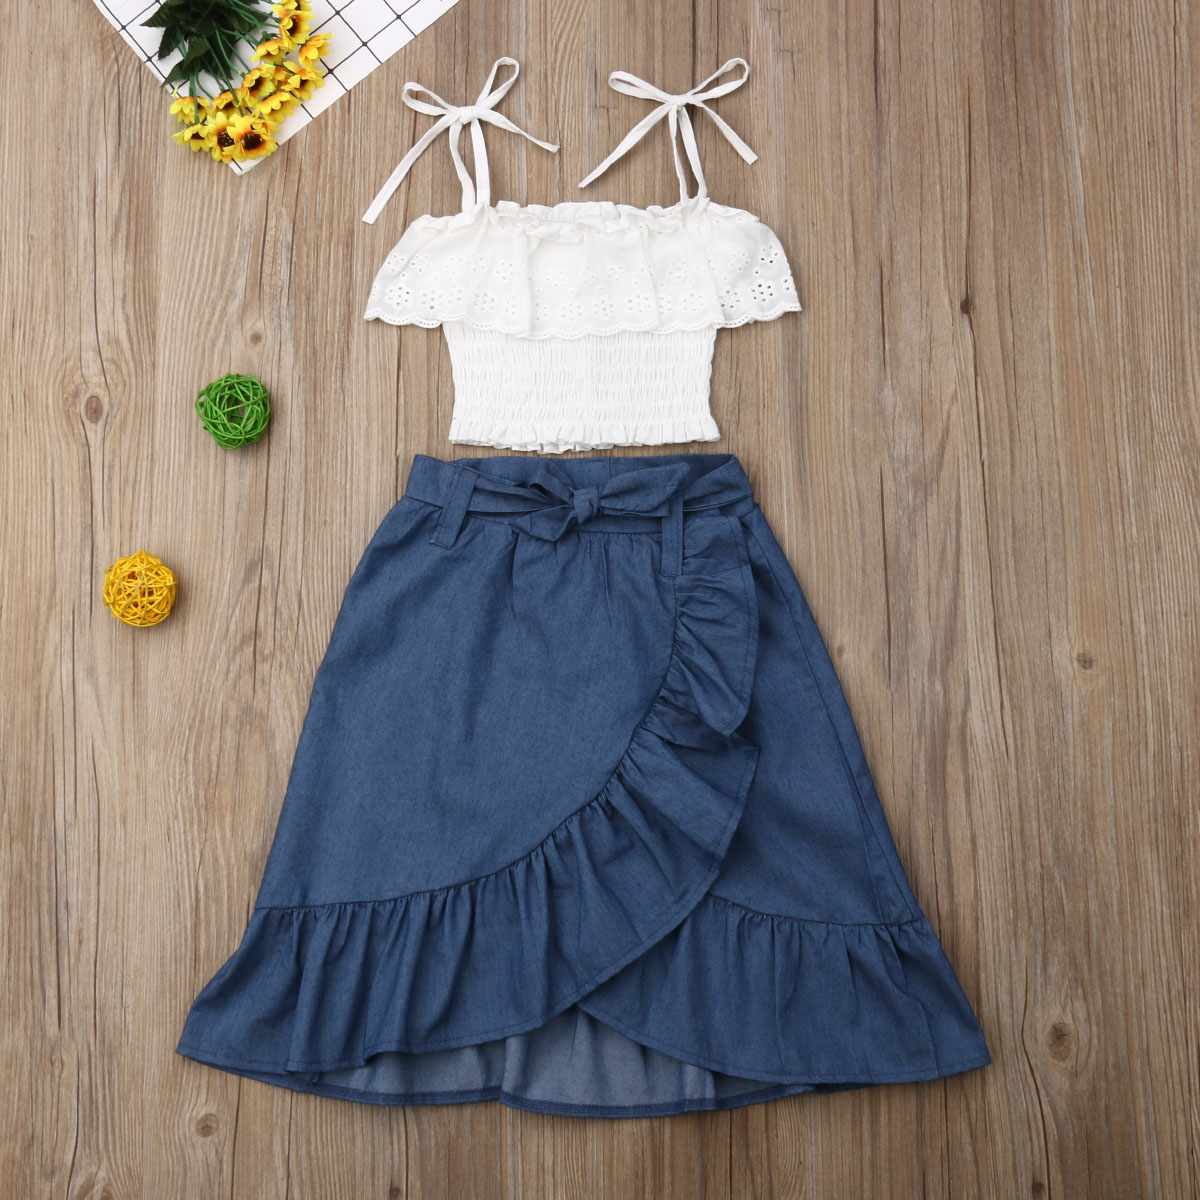 Pudcoco Newest Toddler Baby Girl Clothes Off Shoulder Lace Sling Tops Denim Ruffle Skirt 2Pcs Outfits Summer Clothes